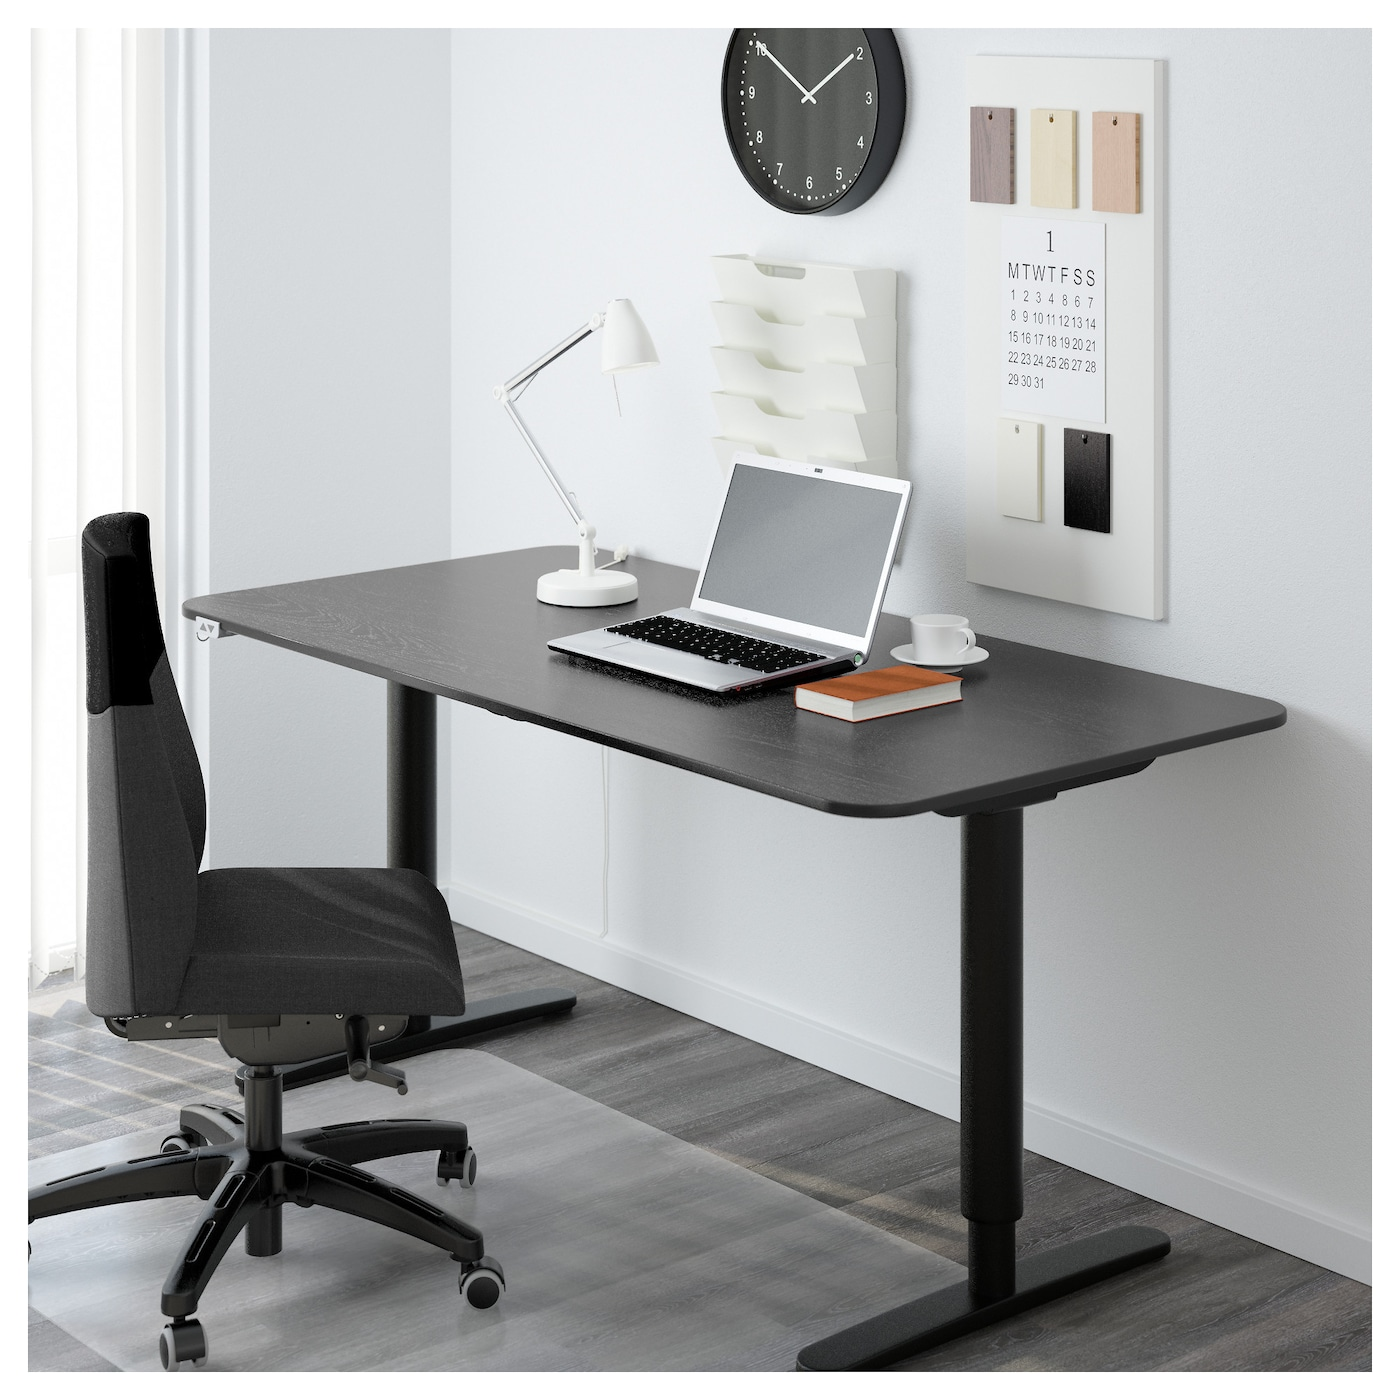 en product us workfit orig stand details desktop converter mini a desk desks wfz sit ergotron z products